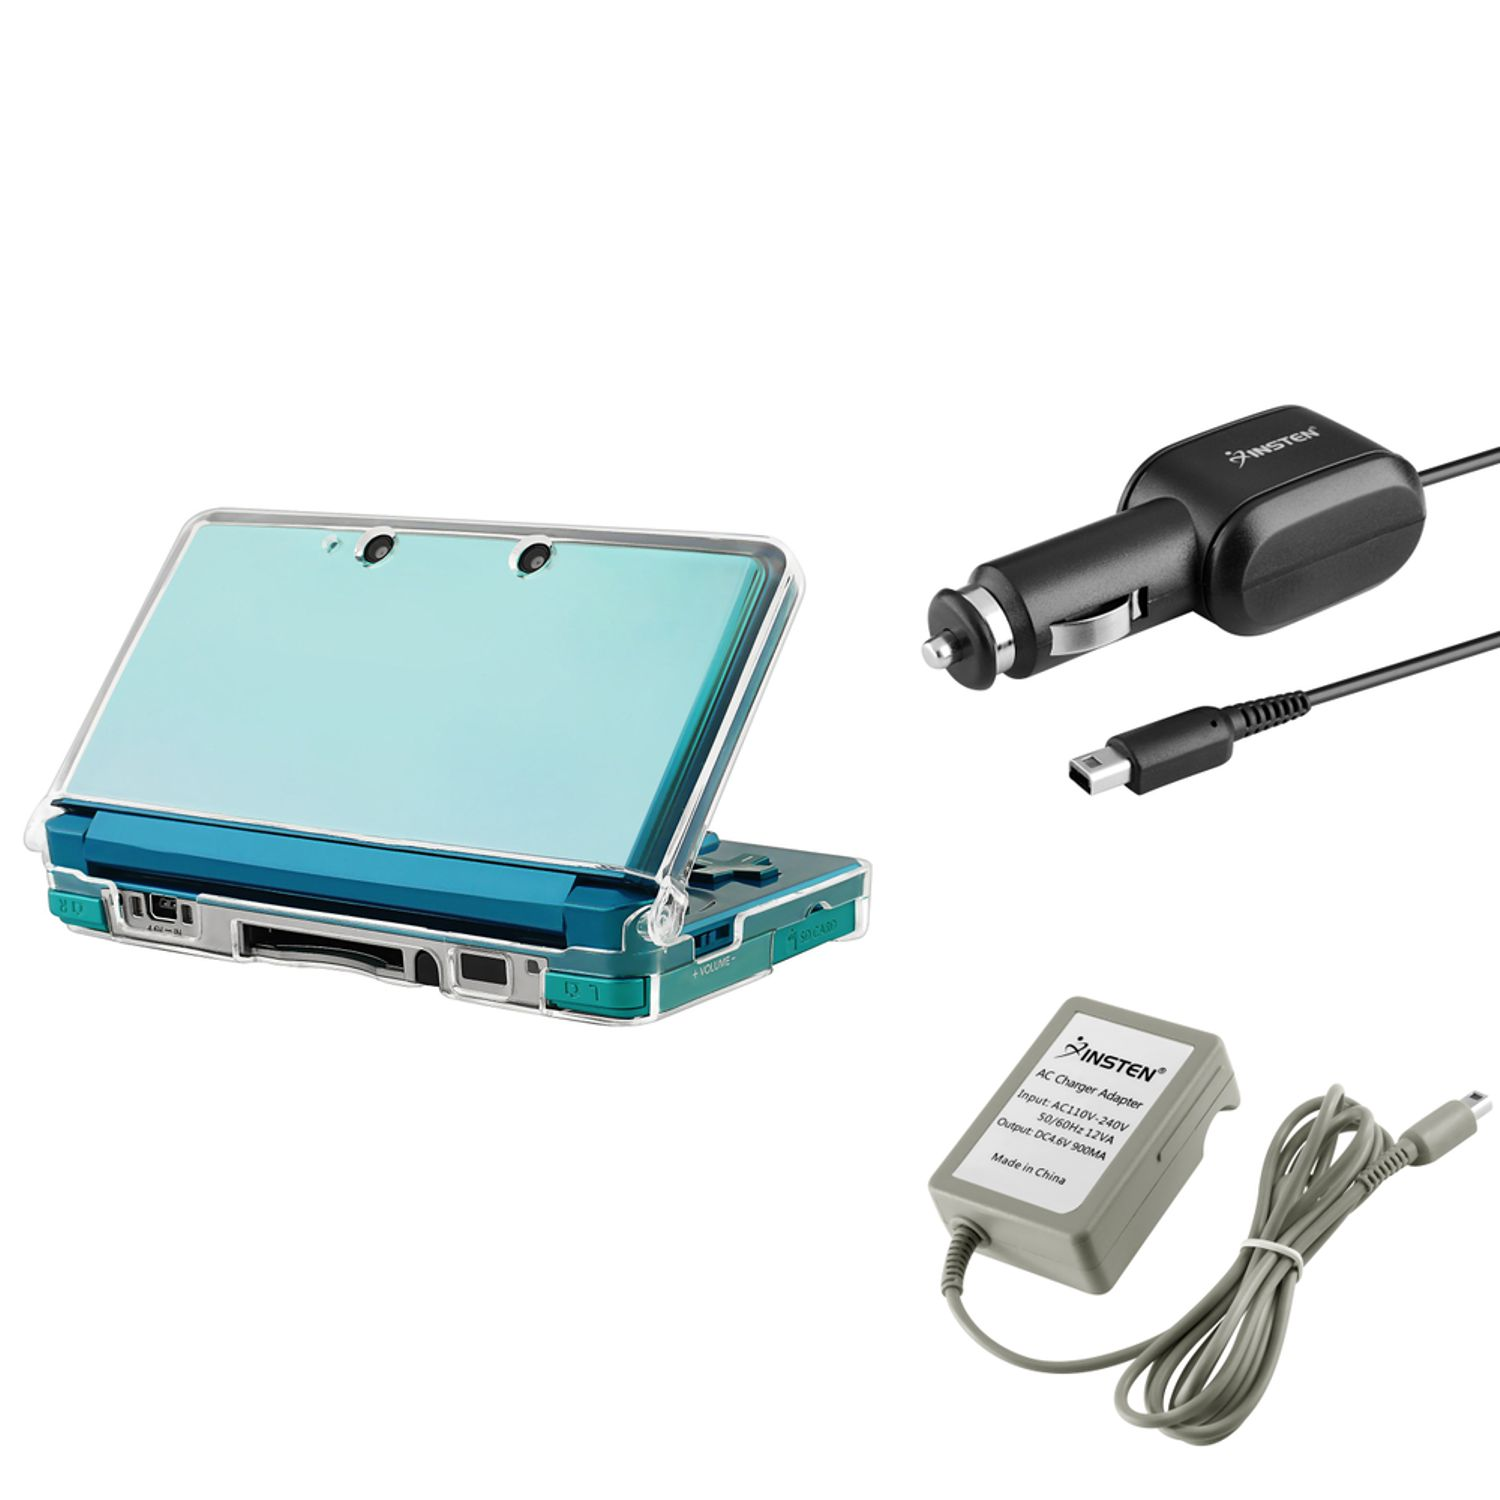 Nintendo 3DS Bundle - Clear Crystal Hard Case + Car Charger + Travel AC Wall Charger (3-in-1 Accessory Bundle) by Insten